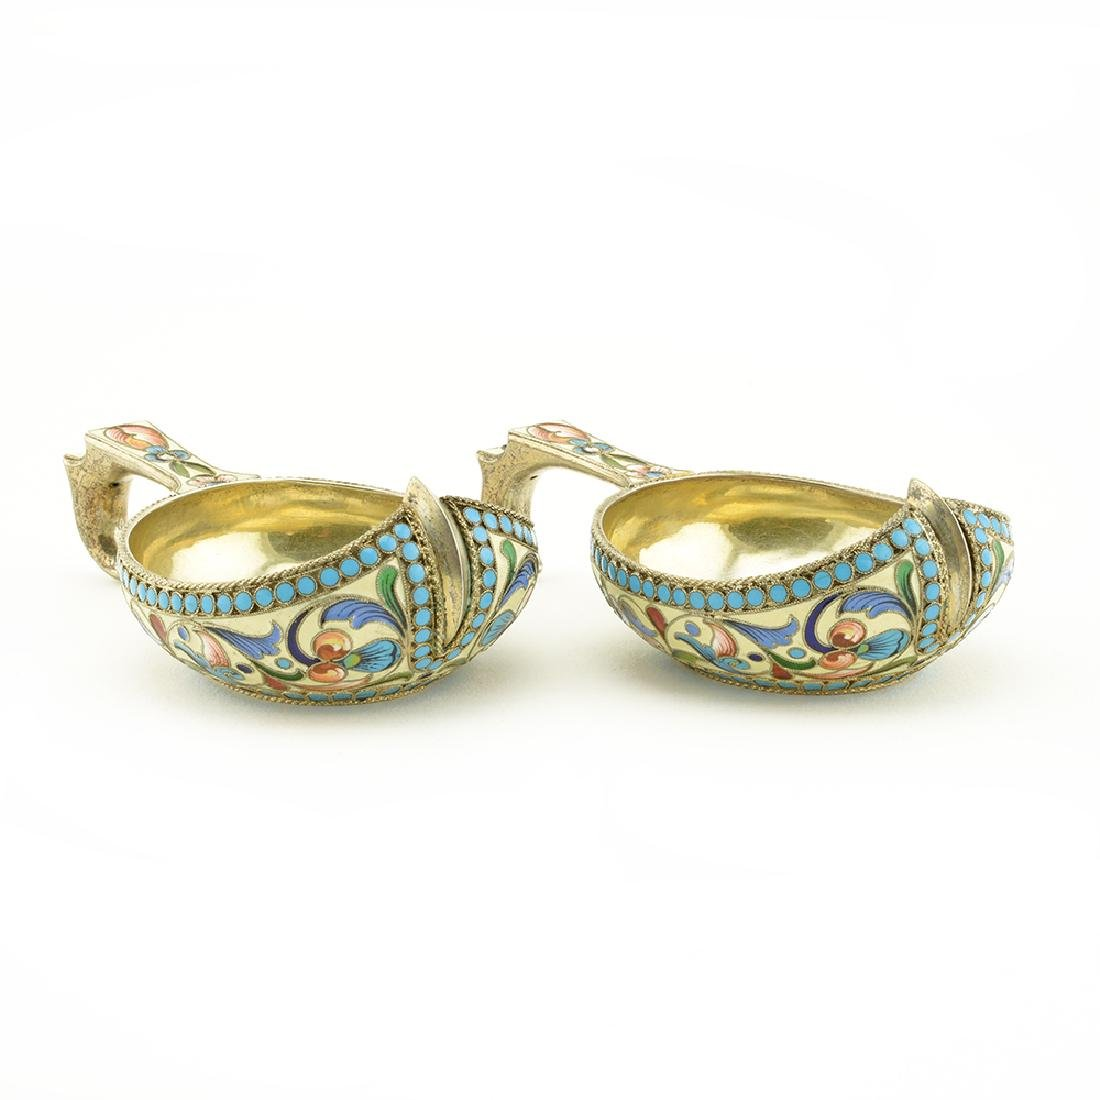 Pair of antique mini shaded enamel kovshi